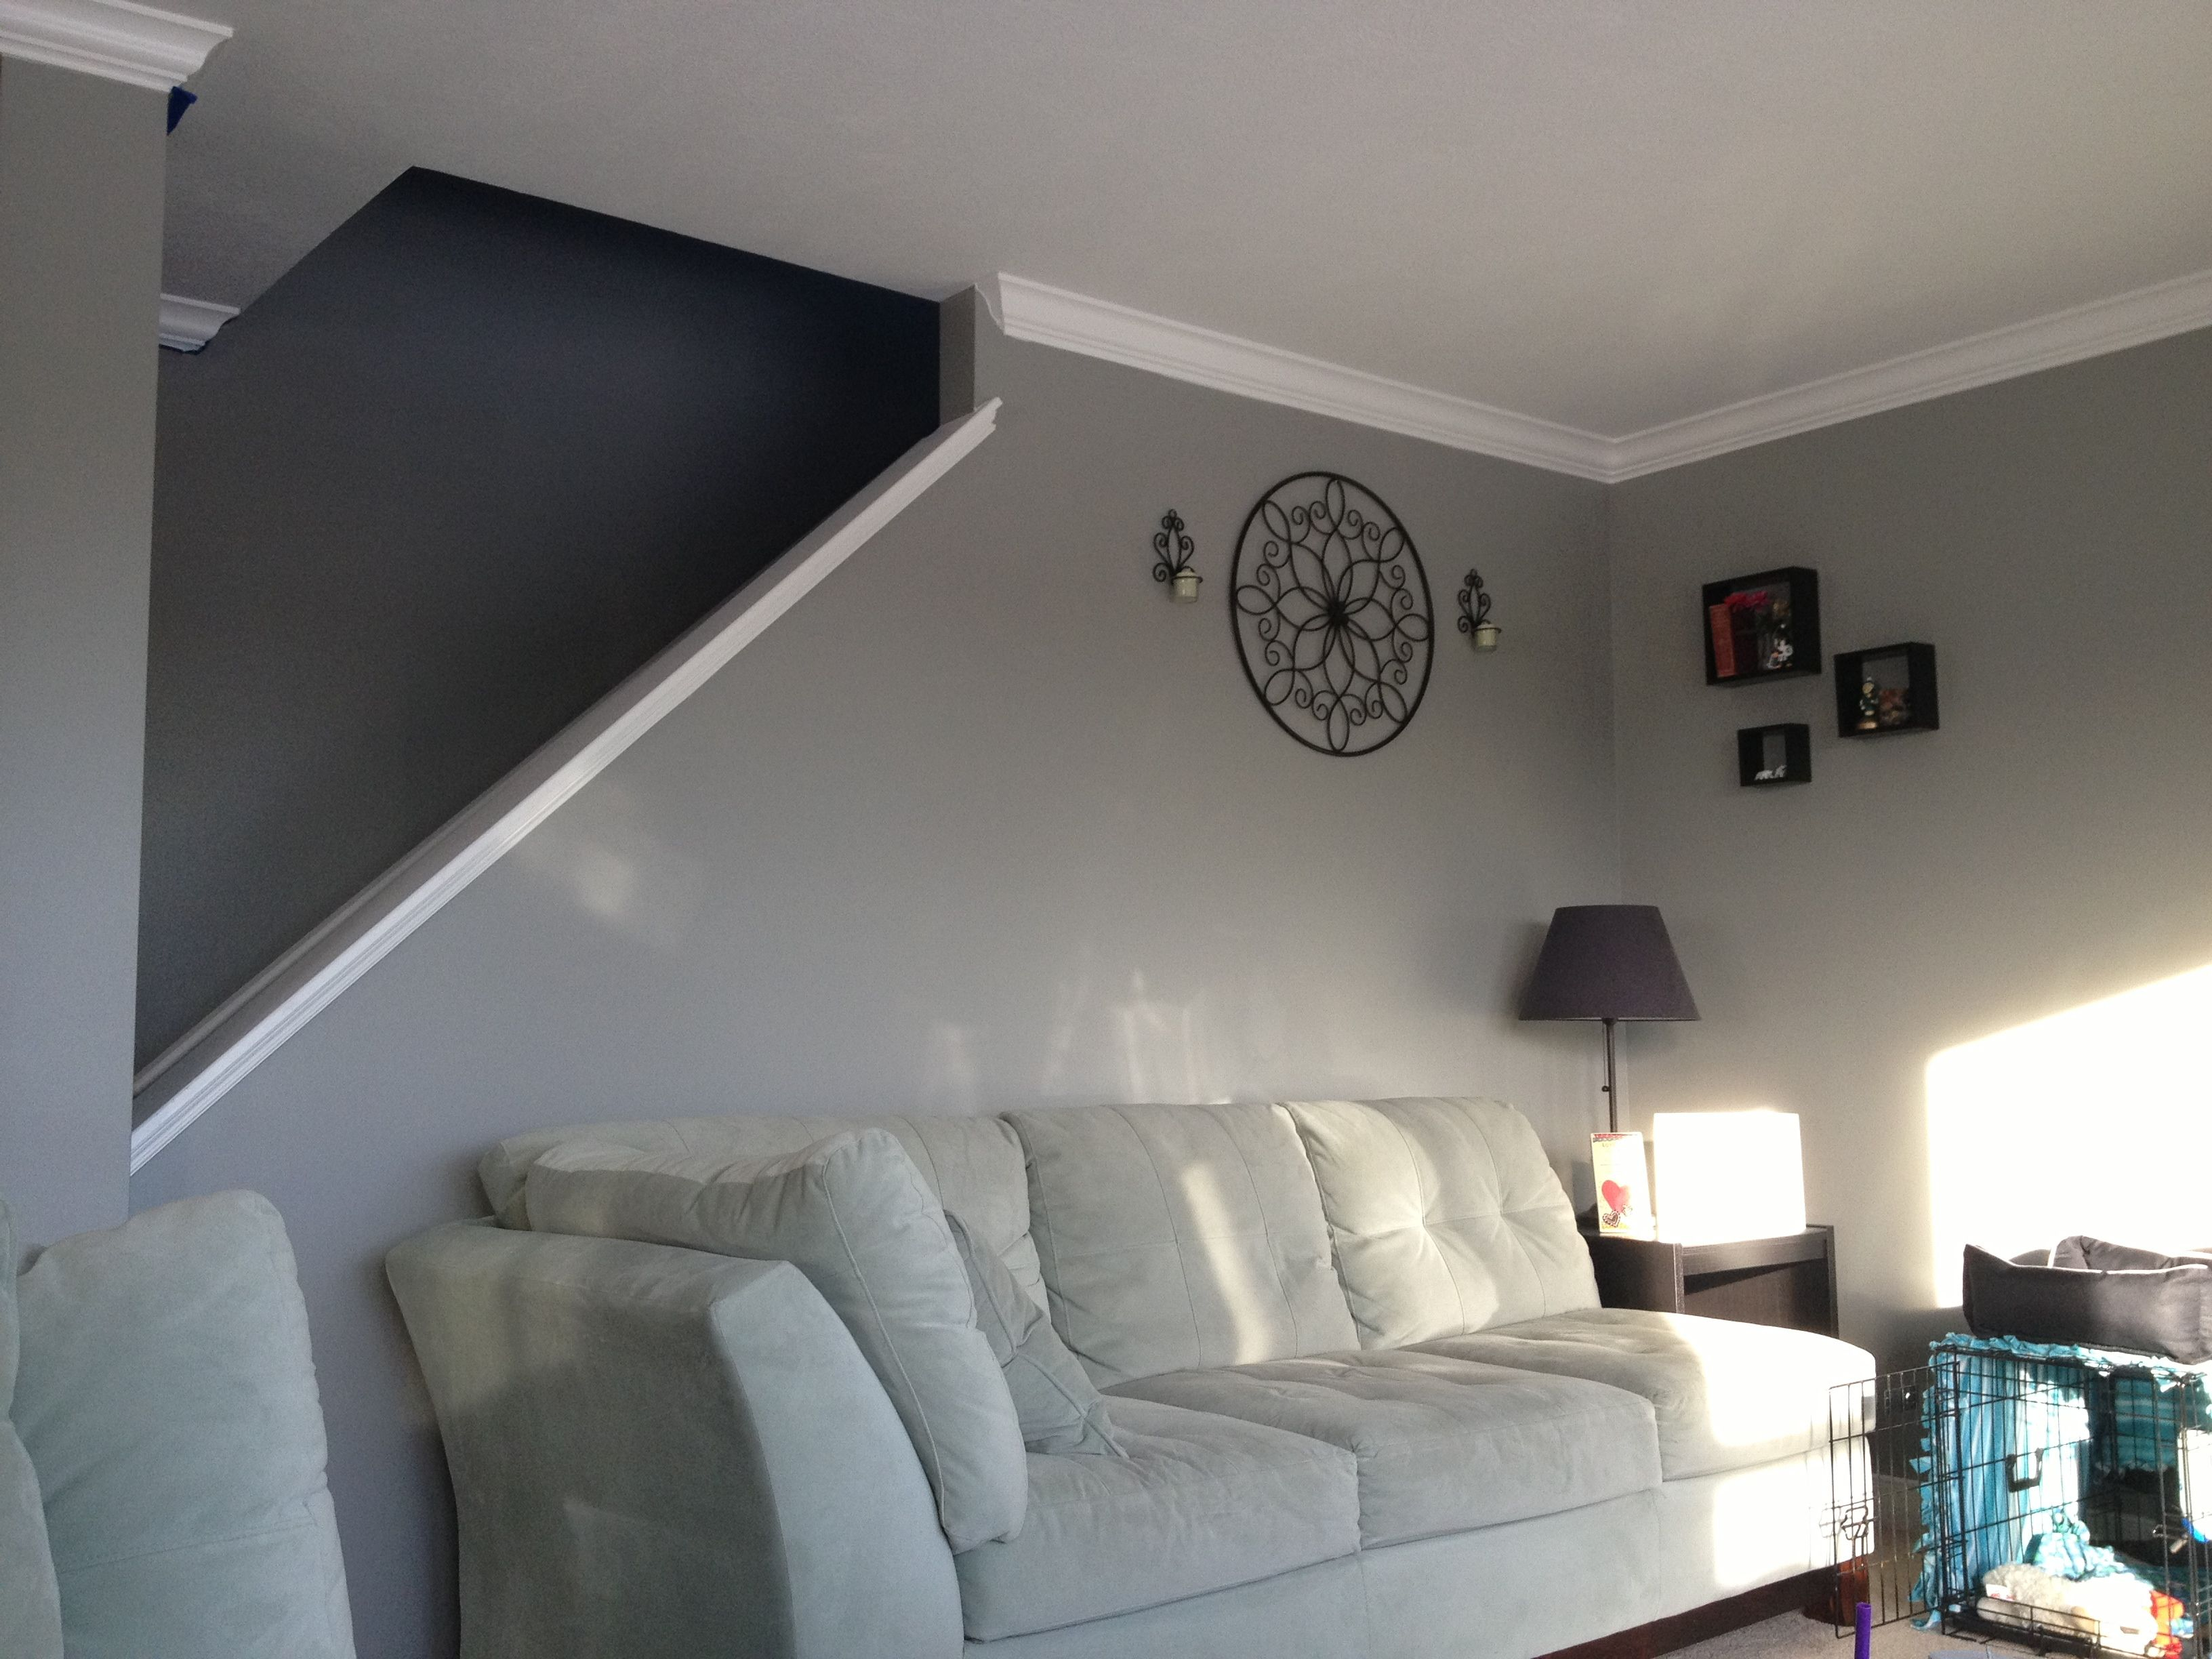 Valspar Wet Pavement This Color Is Amazing In My Living Room With Lots Of Natural Light Not